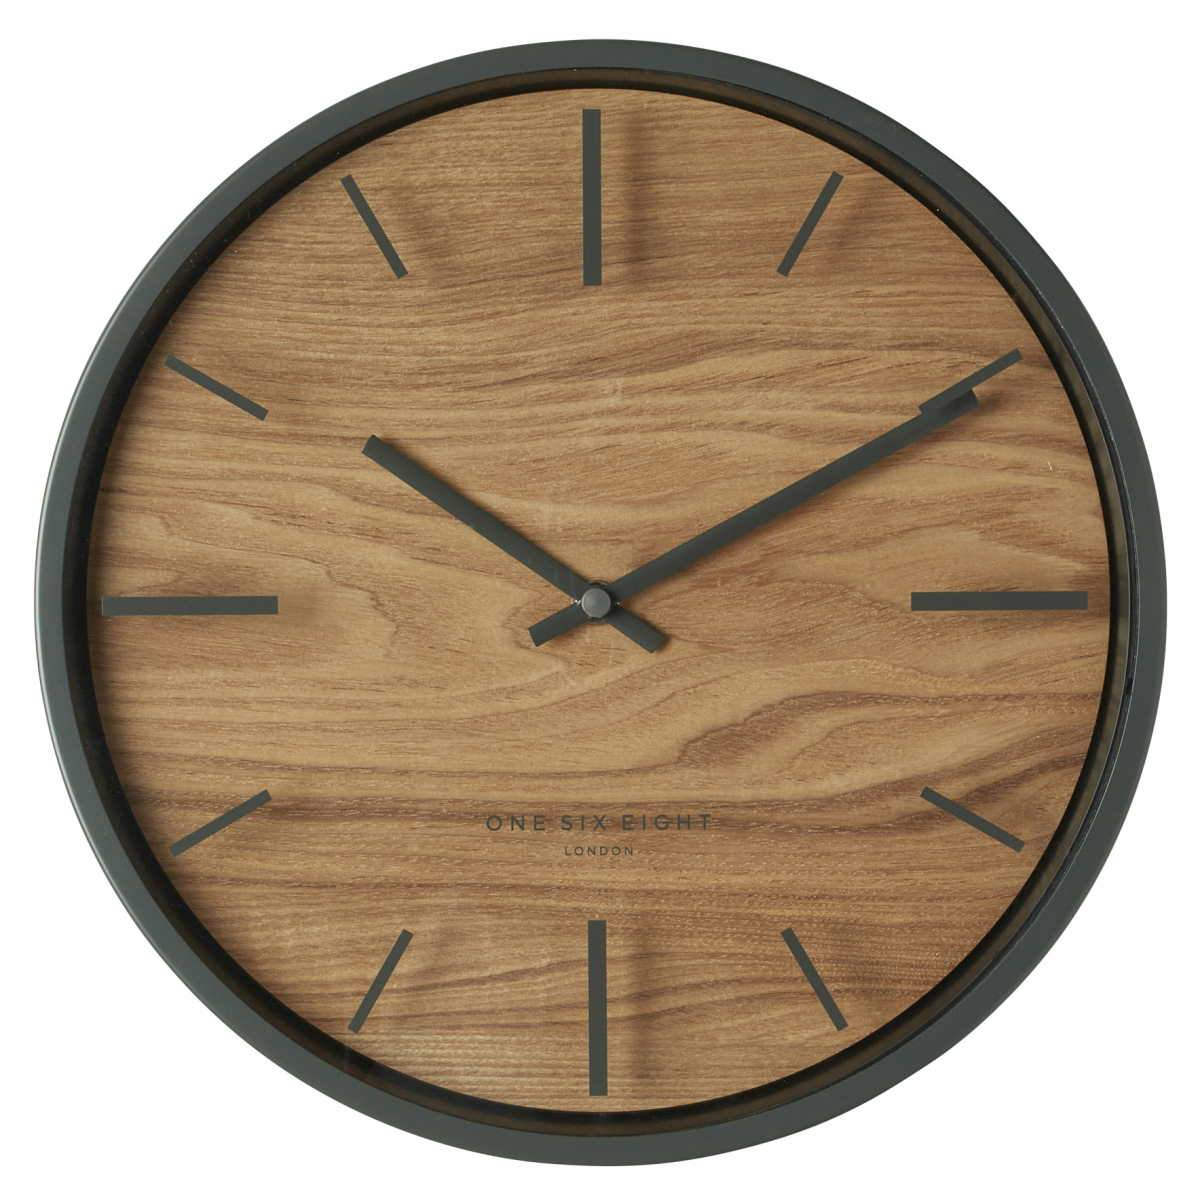 One Six Eight London Willow Wooden Wall Clock Charcoal Grey 30cm 21031 1